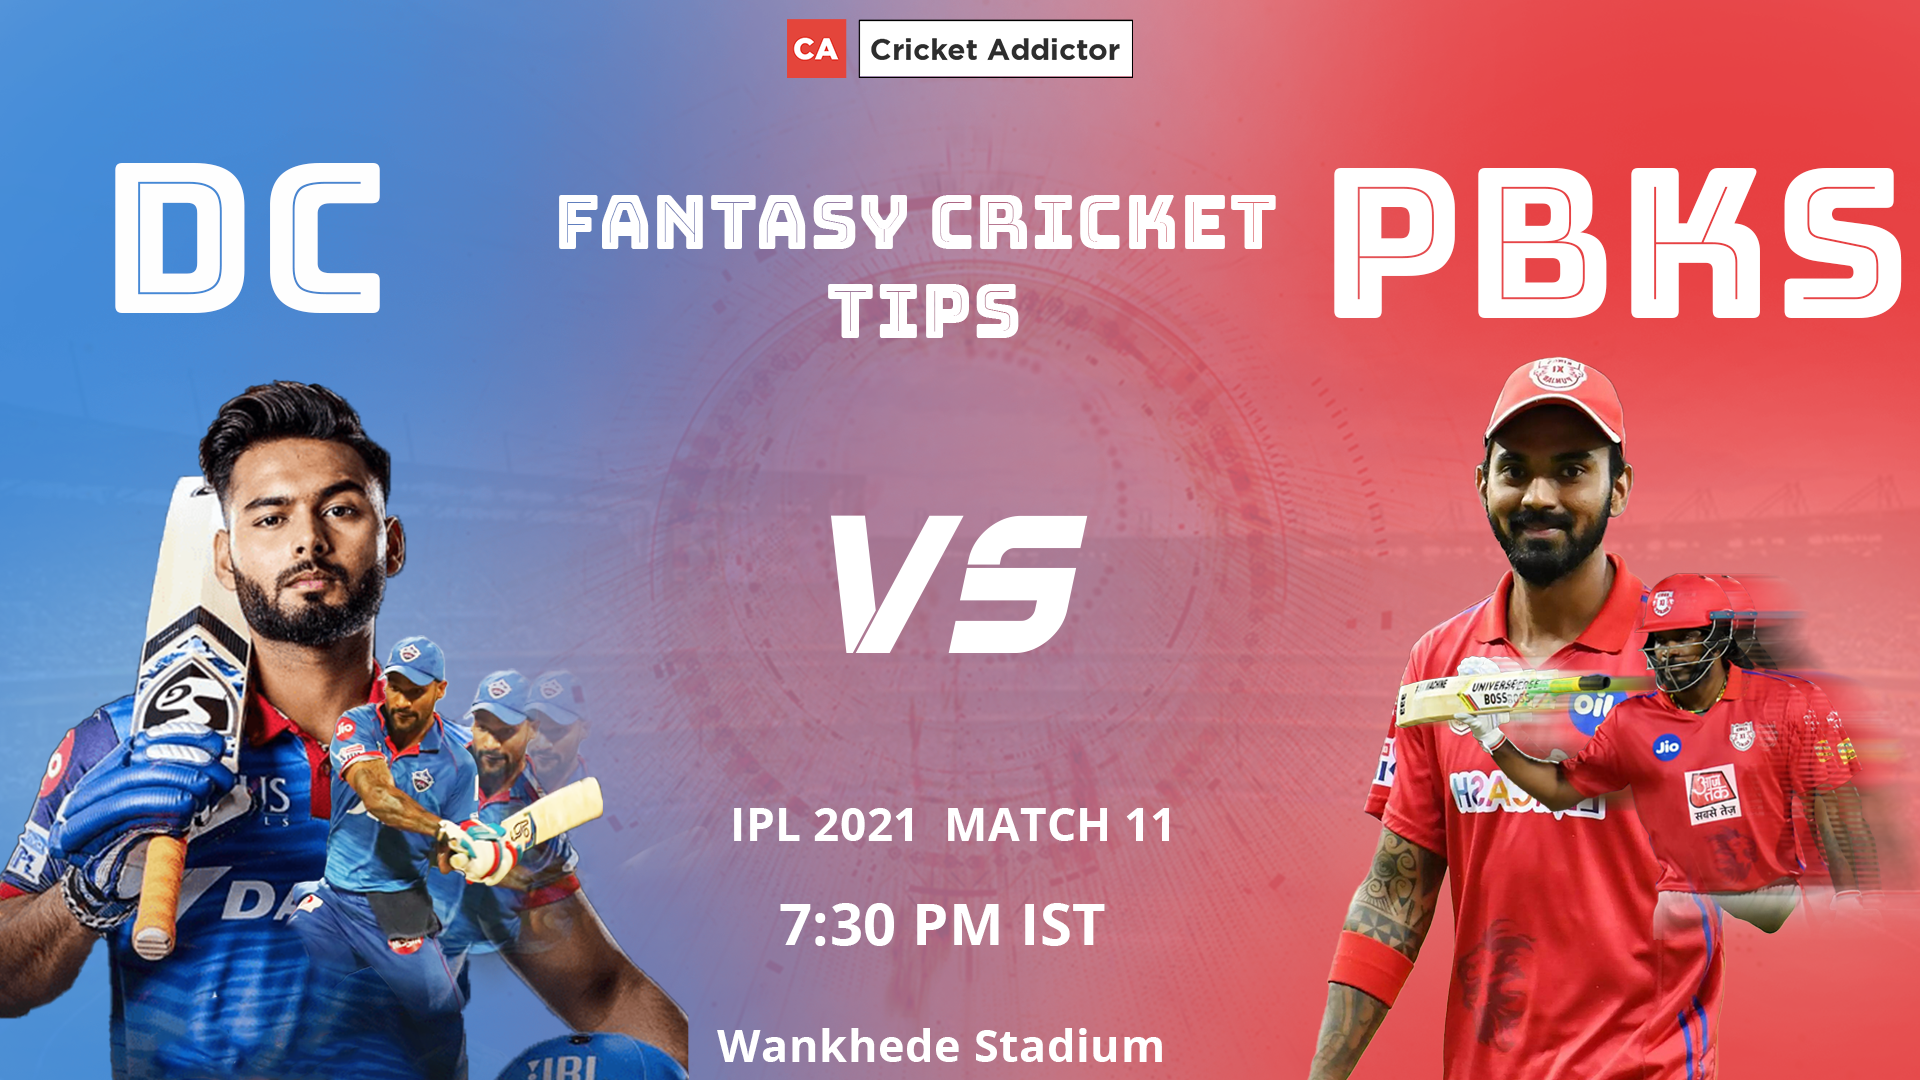 Delhi Capitals (DC) vs Punjab Kings (PBKS) Dream11 Prediction, Fantasy Cricket Tips, Playing XI, Pitch Report, Dream11 Team Today, Fantasy Team, Injury Update of VIVO IPL 2021.